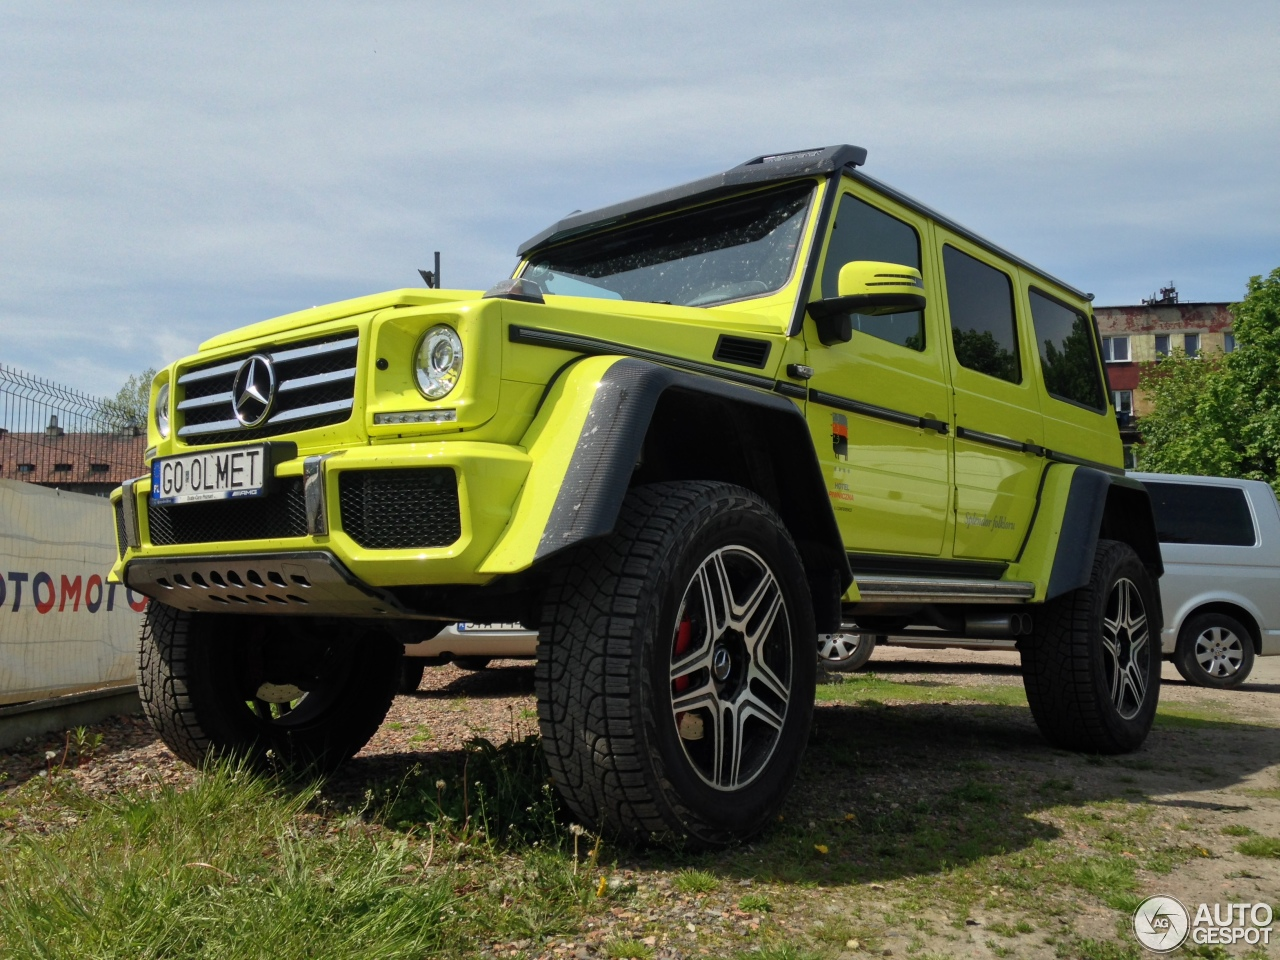 Mercedes benz g 500 4x4 1 june 2017 autogespot for Mercedes benz g 500